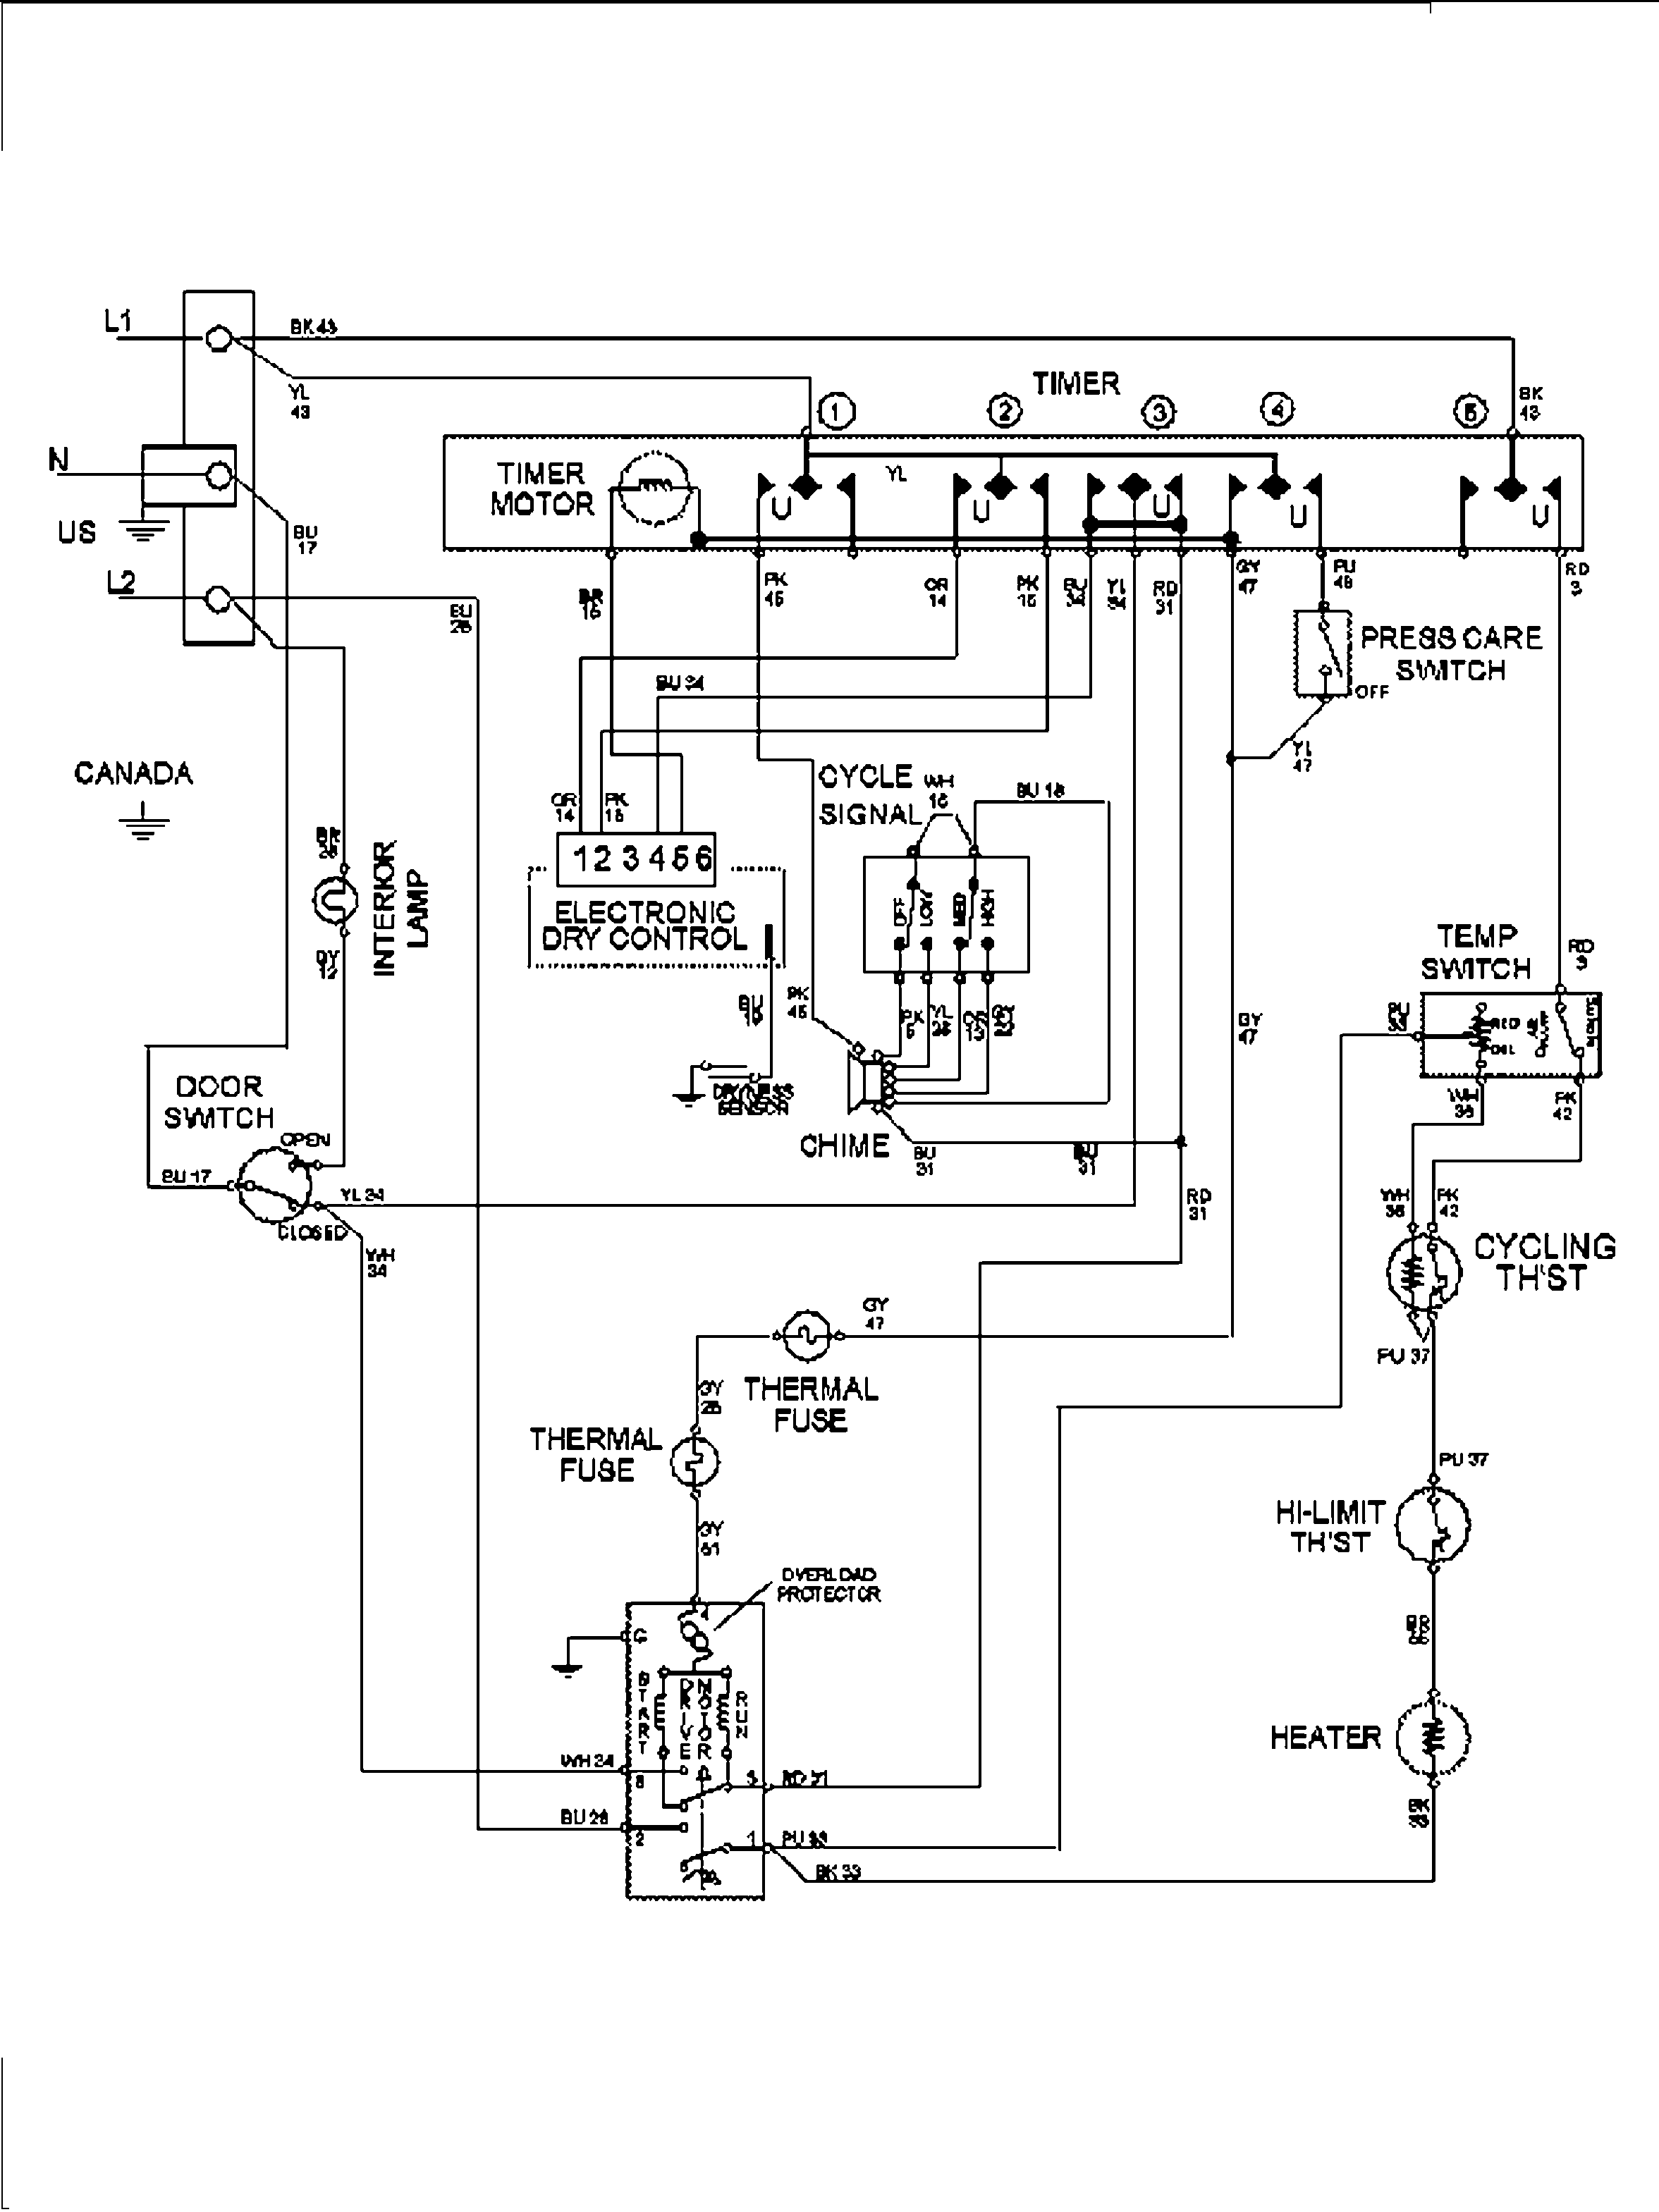 2011 02 15_003958_mde8400ayw wiring diagram for maytag atlantis dryer wiring diagram and mde5500ayw wiring diagram at alyssarenee.co